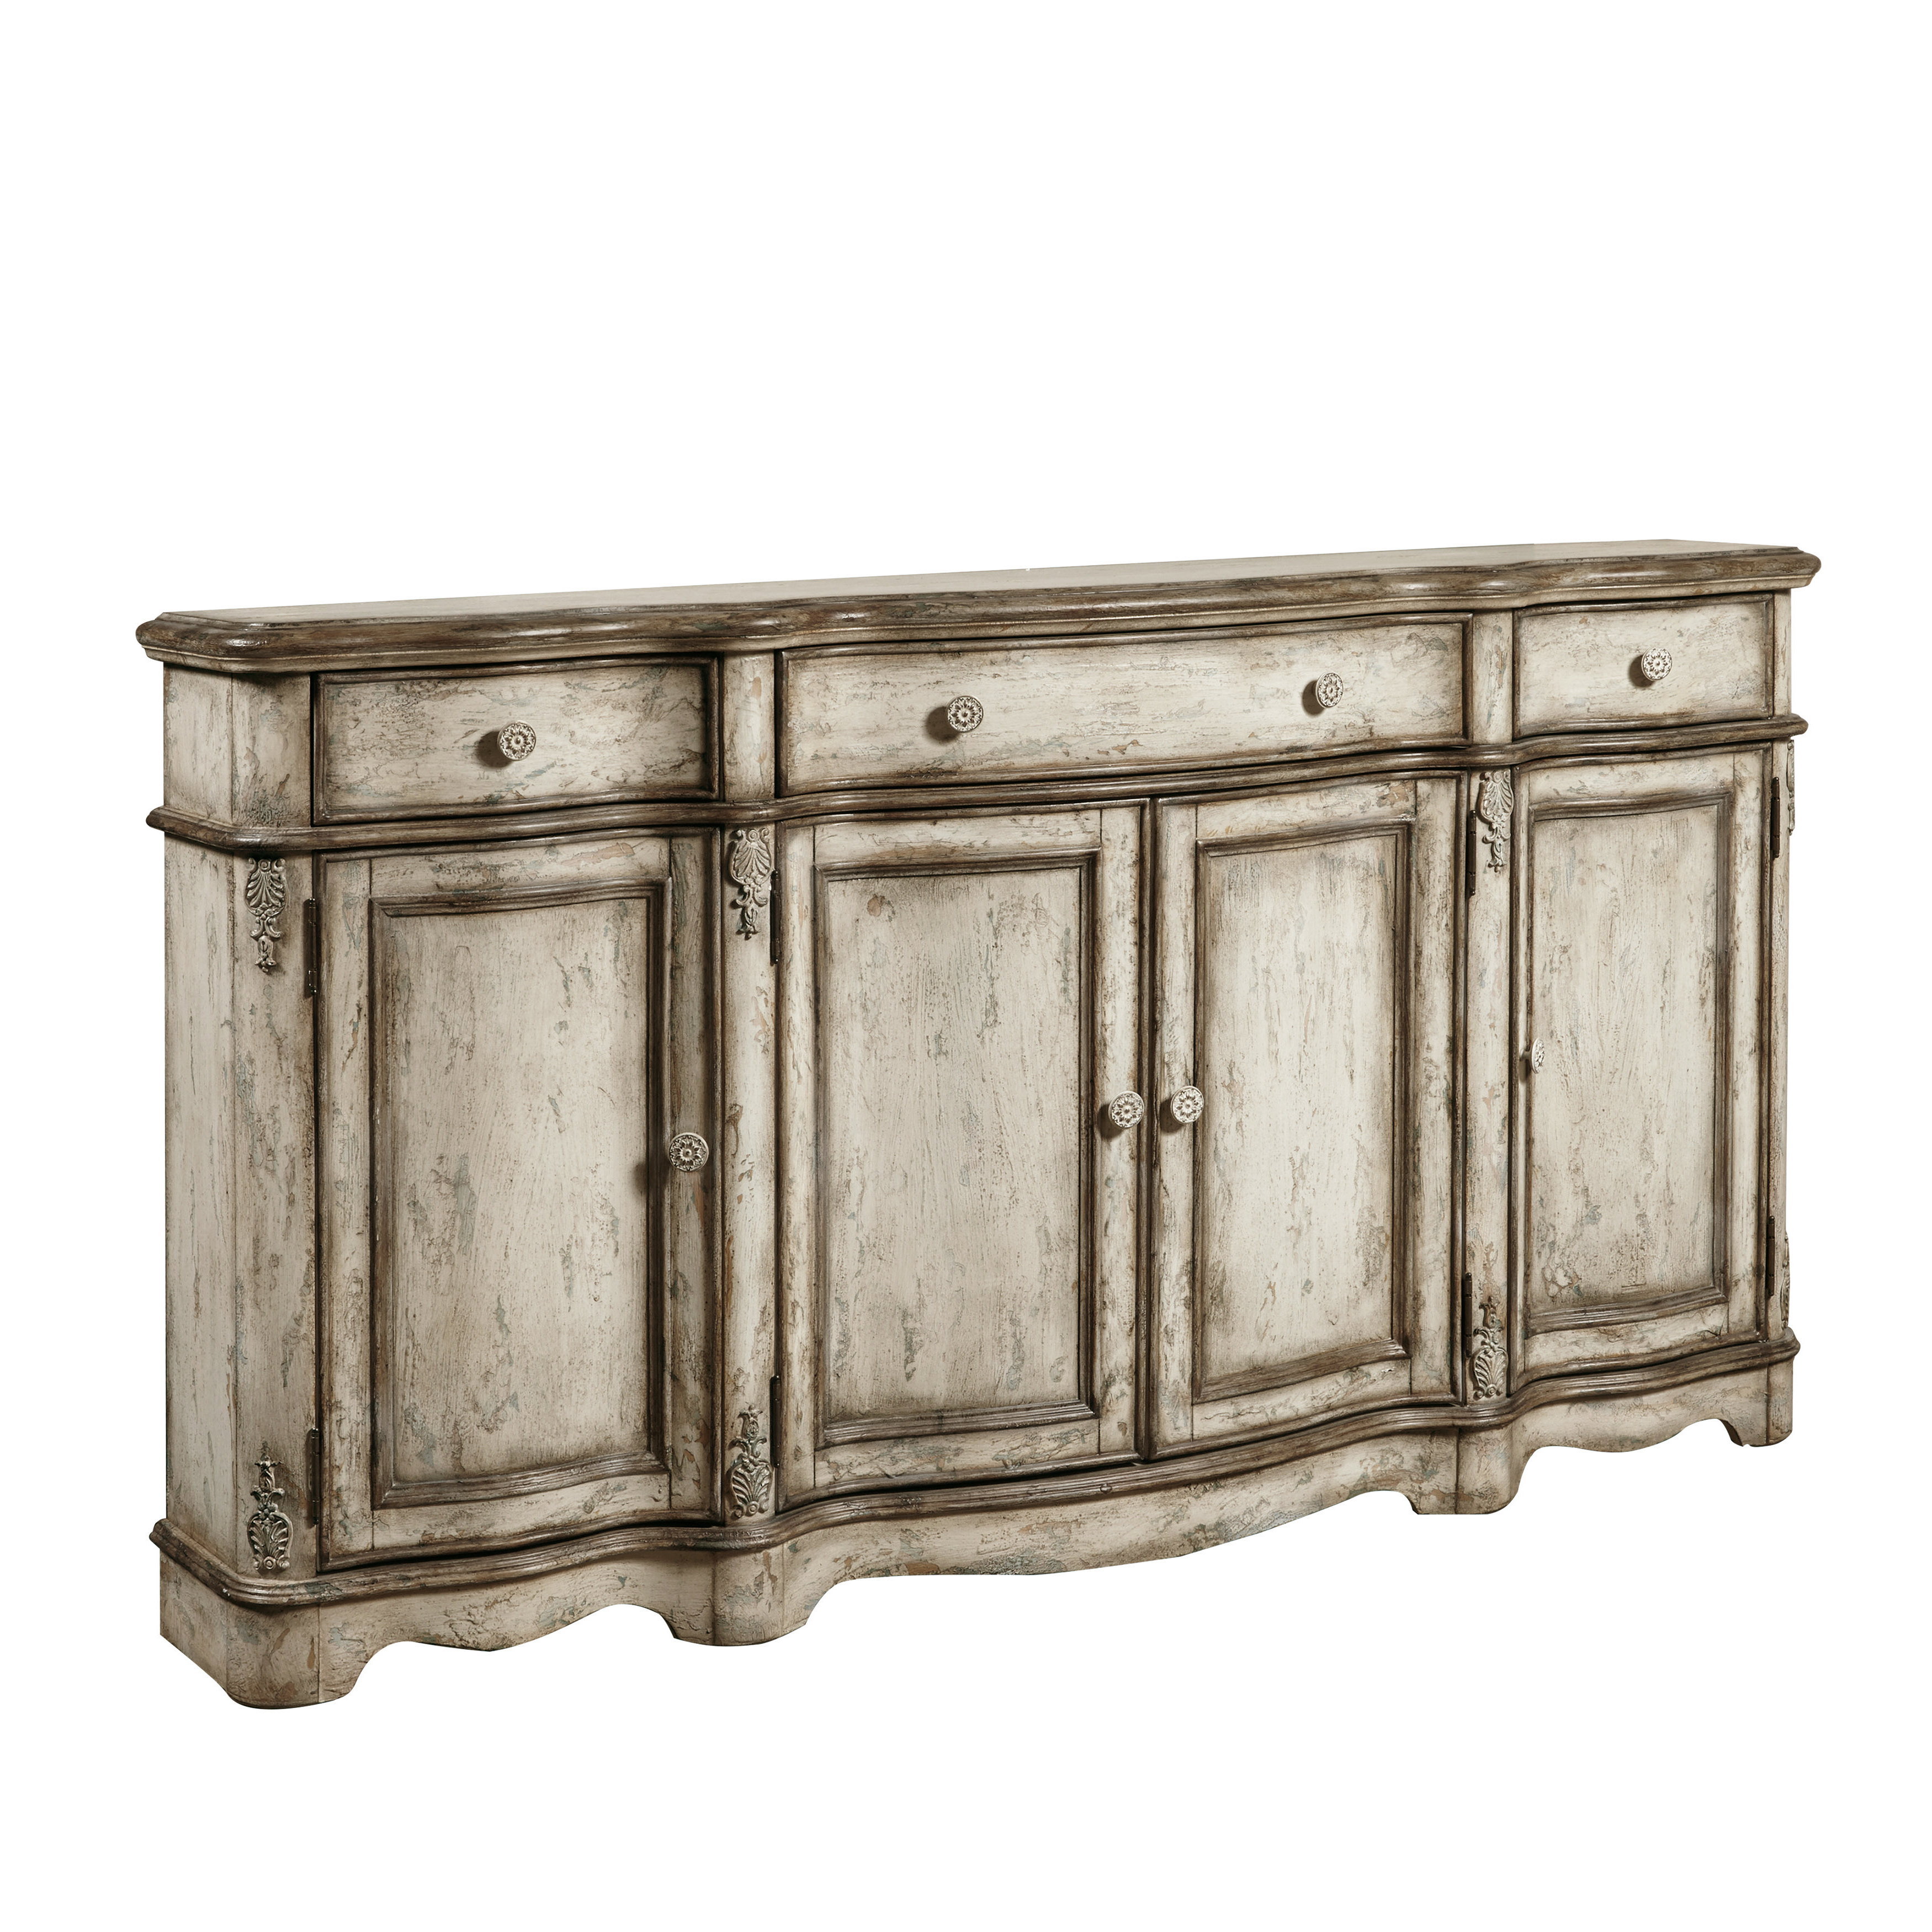 Farmhouse & Rustic White Sideboards & Buffets | Birch Lane With Ruskin Sideboards (View 9 of 20)